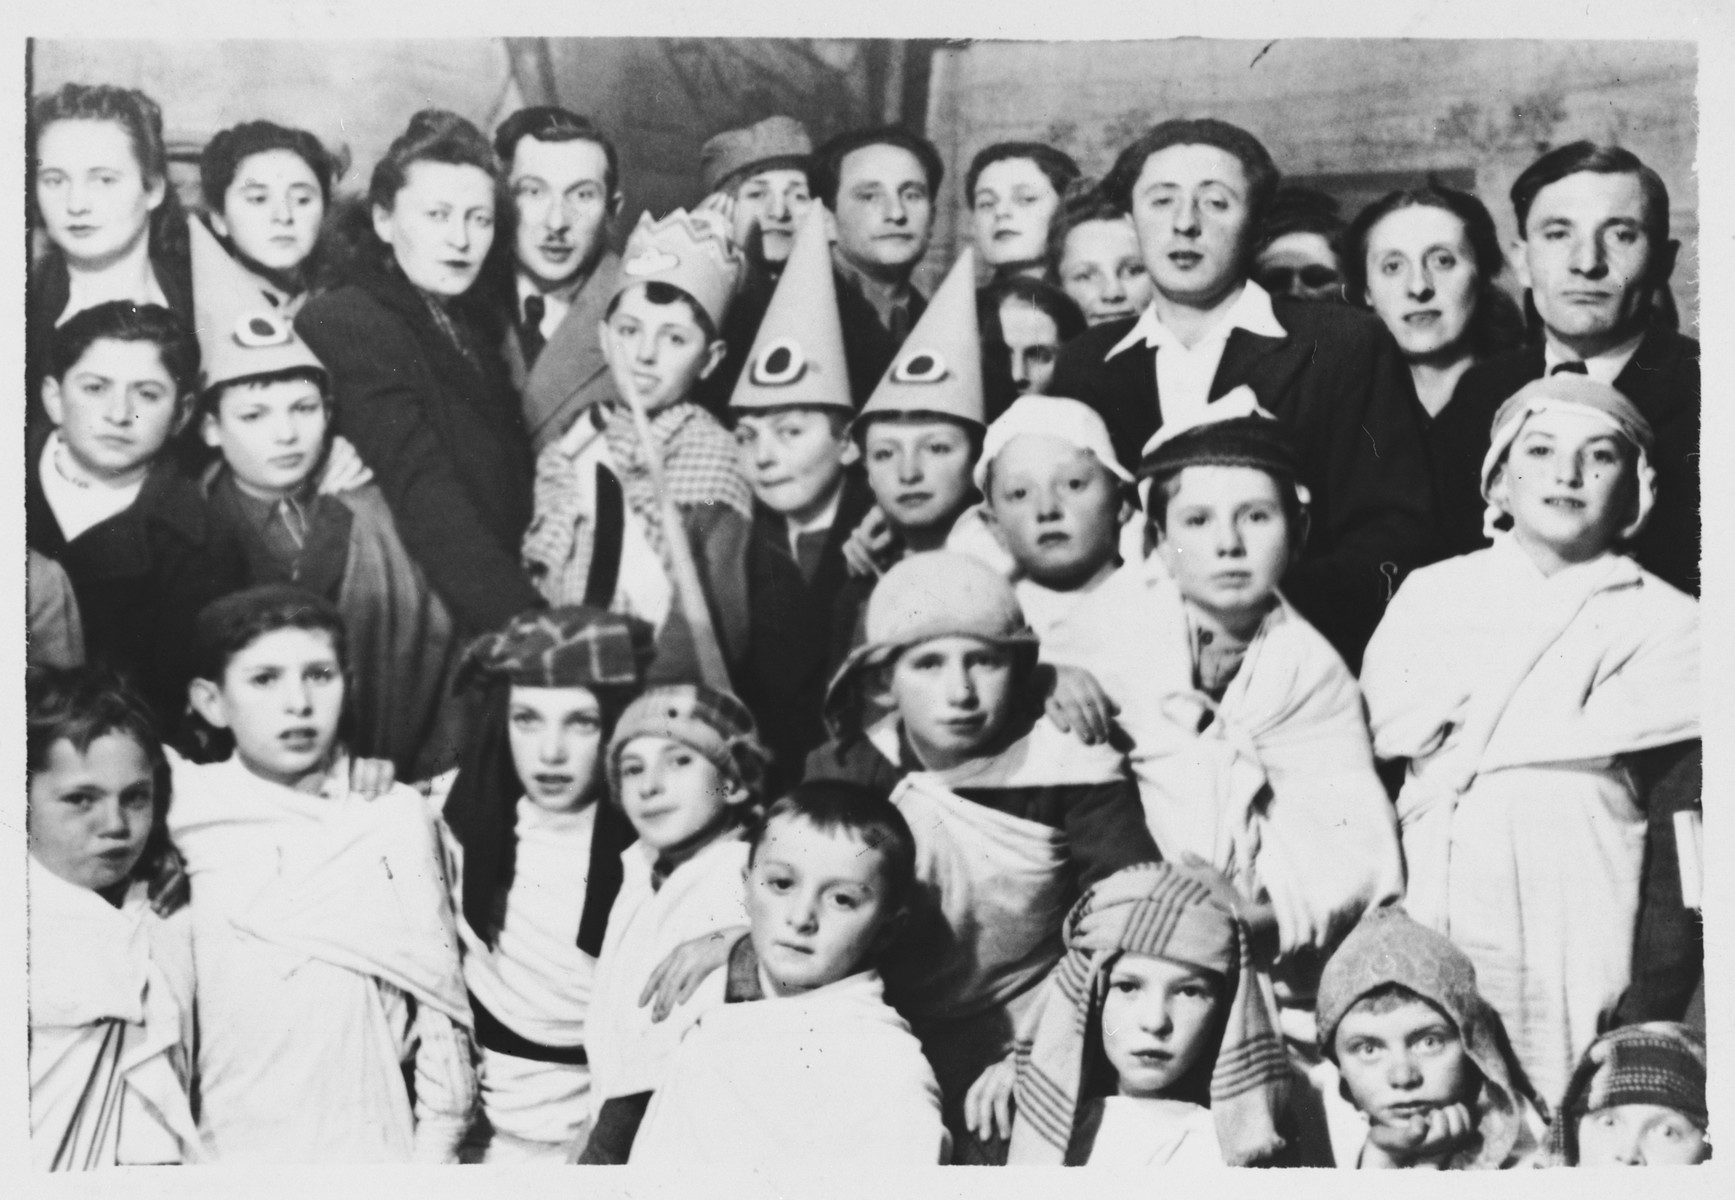 Children attend a Purim costume party in the Foehrenwald DP camp.  Those pictured include Chaim Swidler, Roman Haar and Barry Golub.  The principal Mr. Biber is on the right, and a teacher Mr. Zektzer is in the second row on the far left.